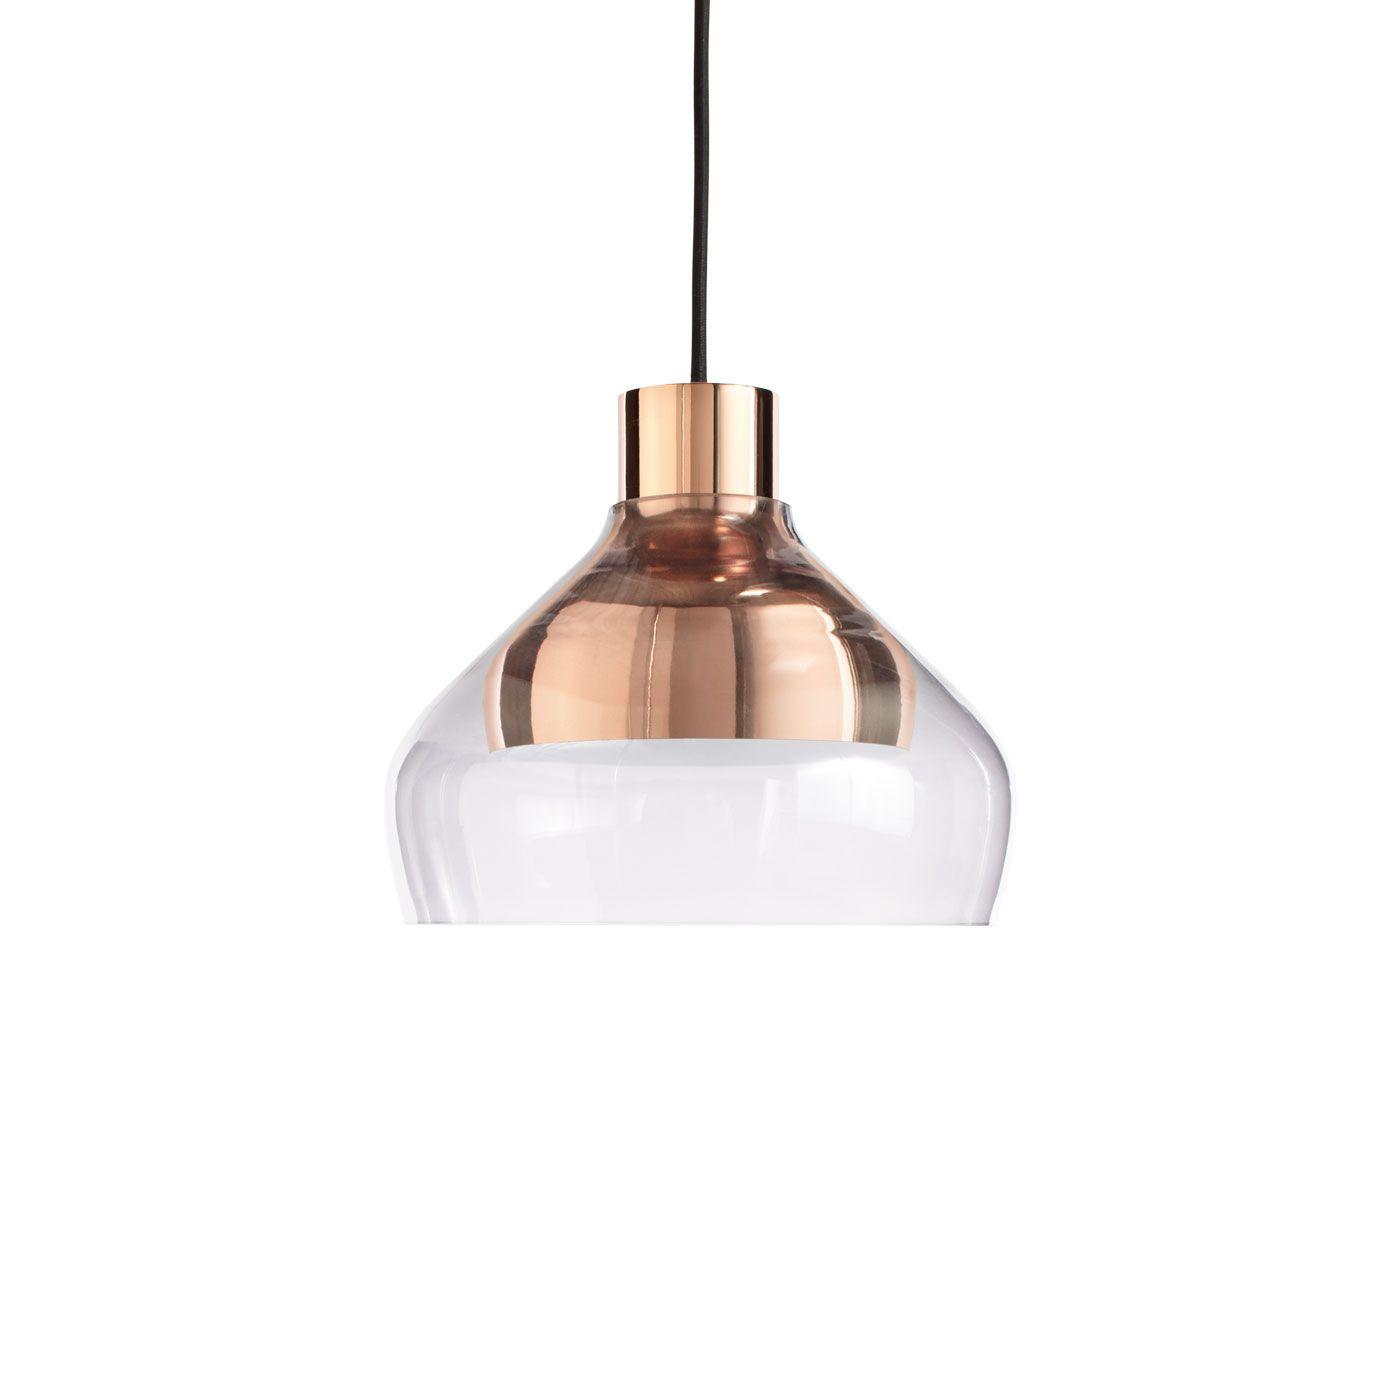 Trace 4 Pendant Light - Modern Lamps and Lights - Blu Dot